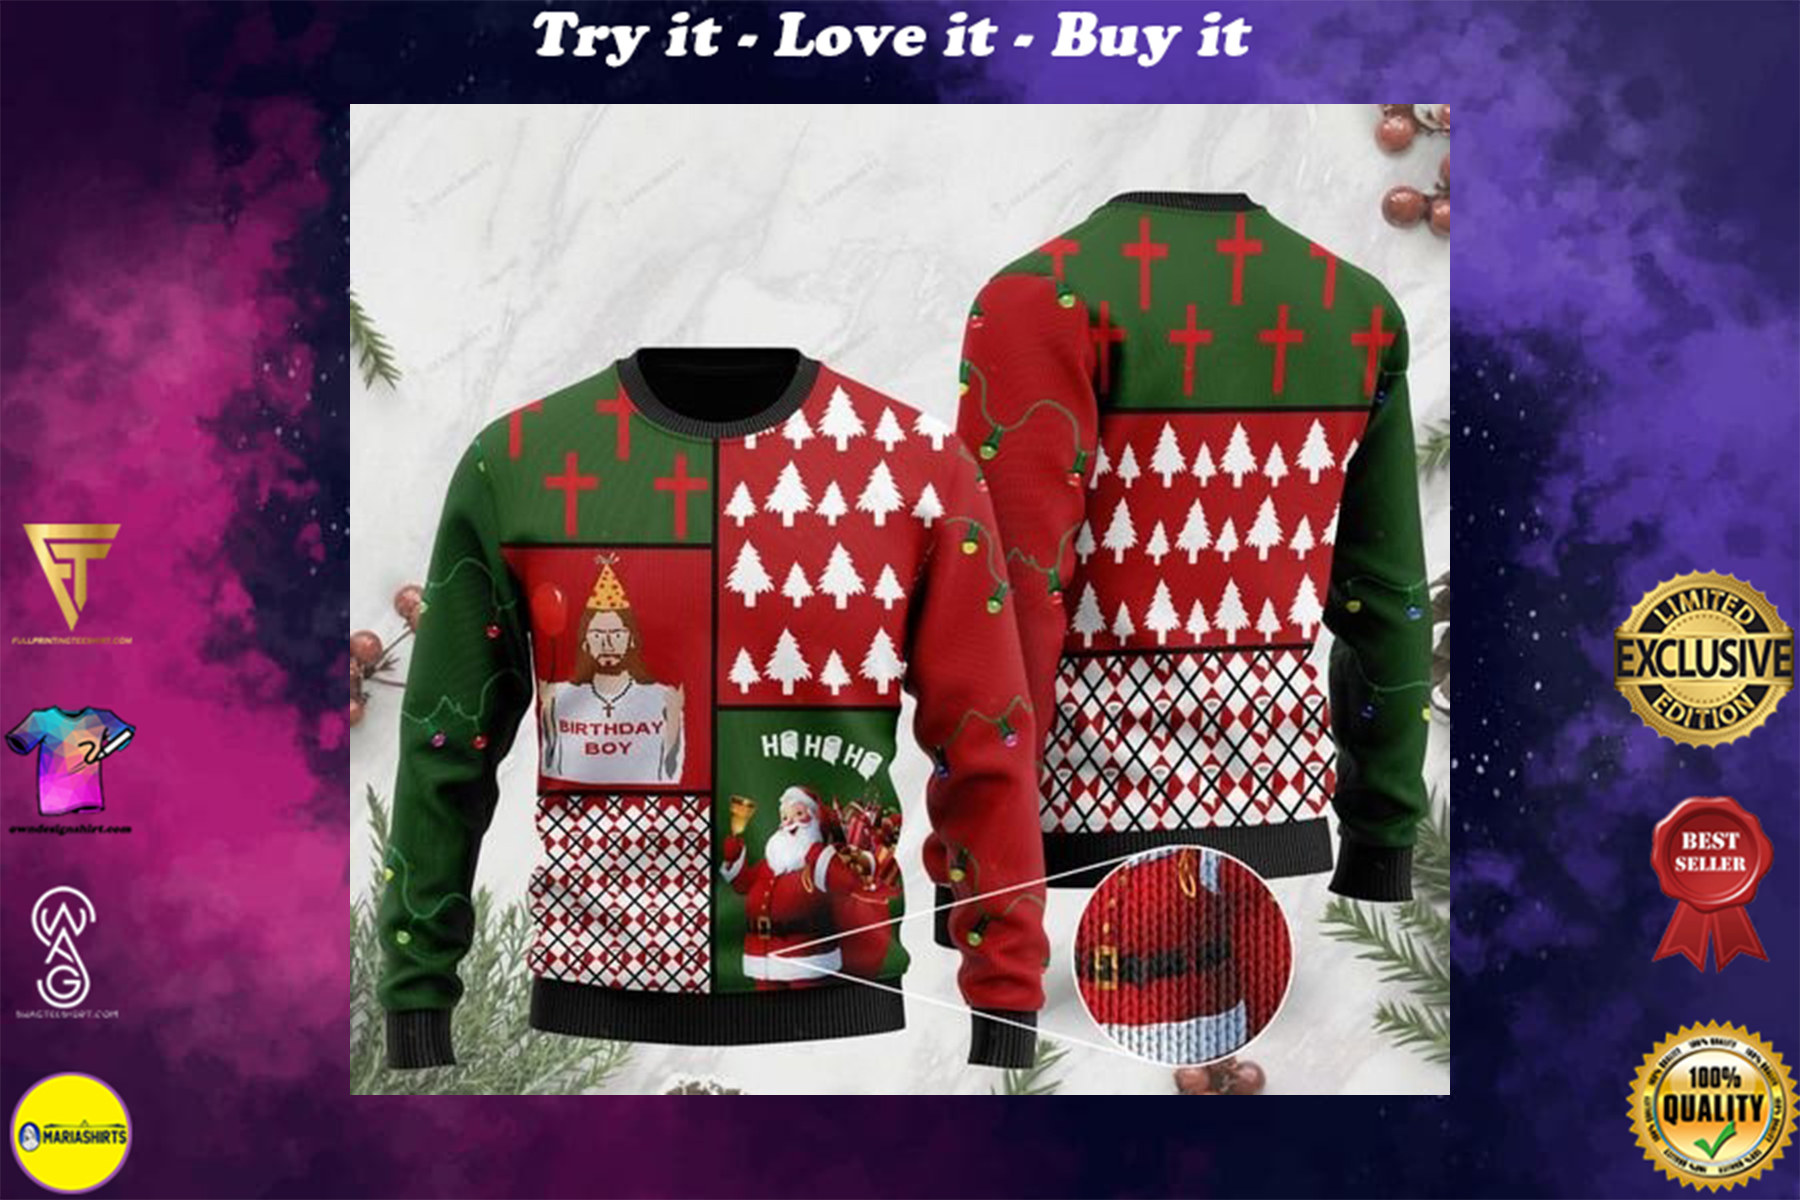 Jesus birthday boy and santa claus ho ho ho with toilet paper full printing ugly sweater